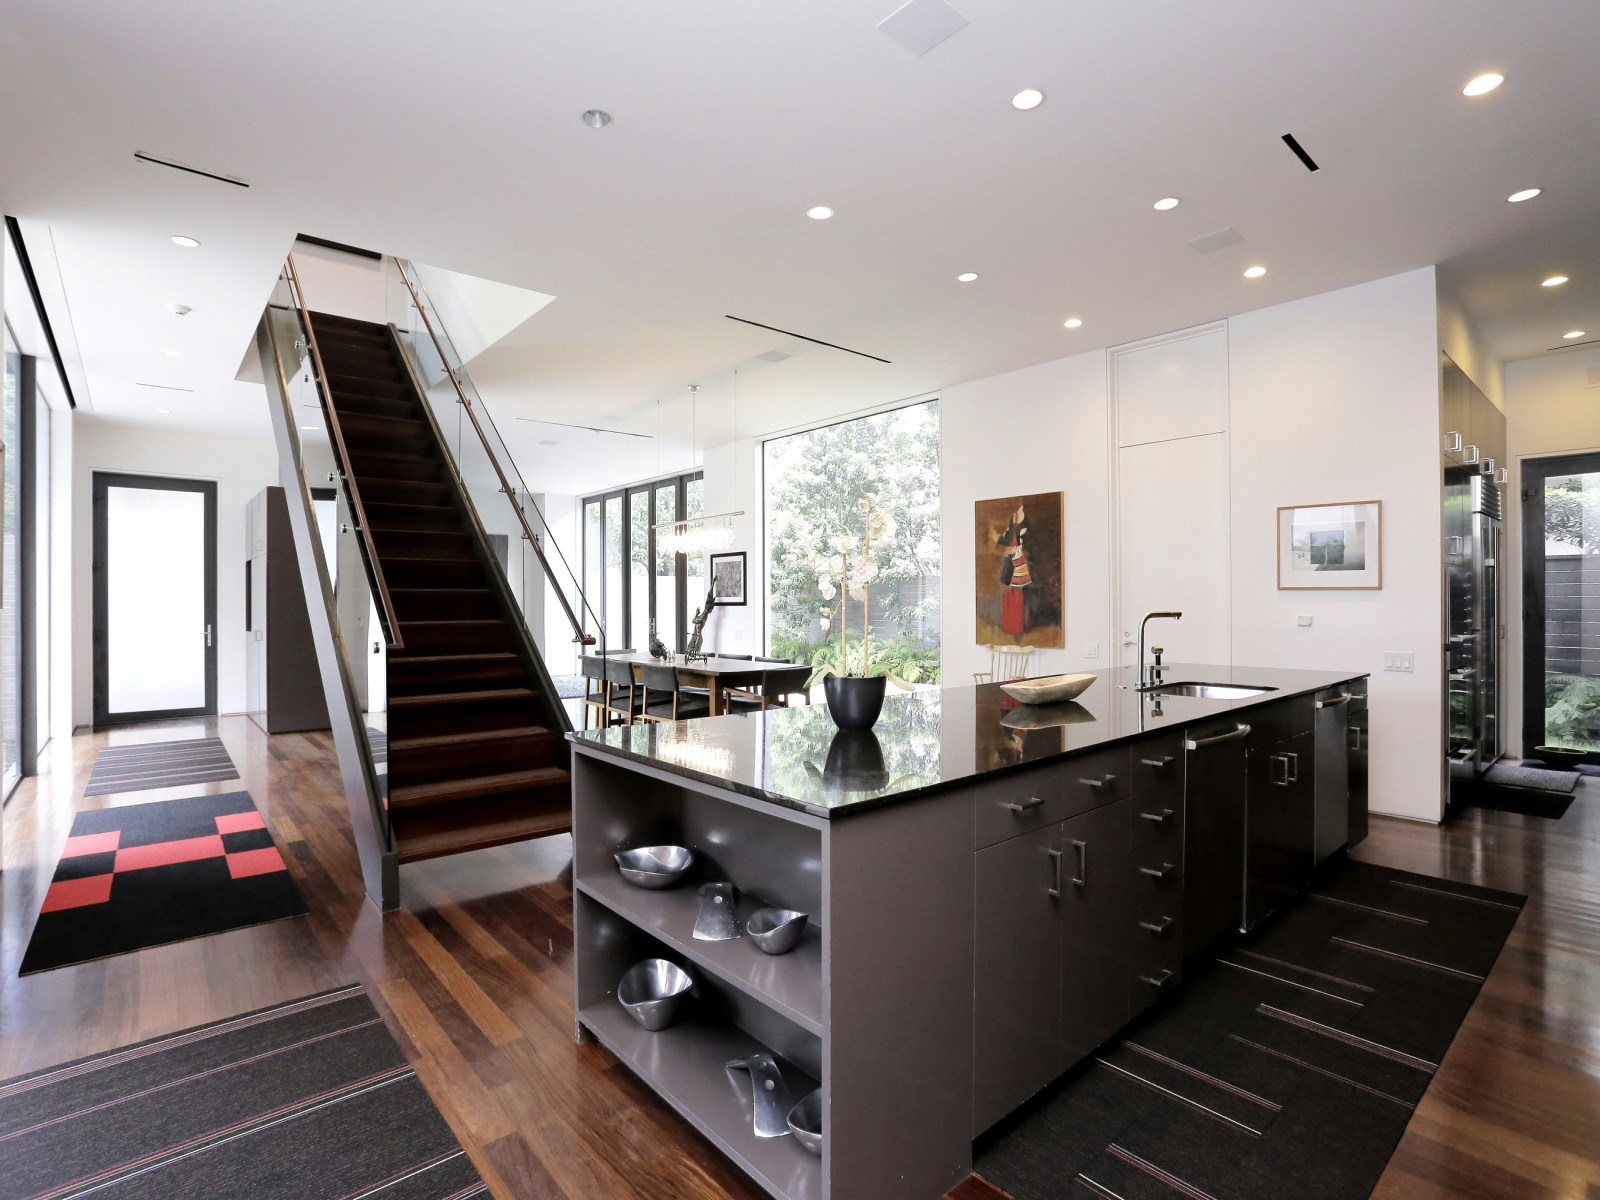 Silver And Black Kitchen - A home with formidable architecture and a light interior